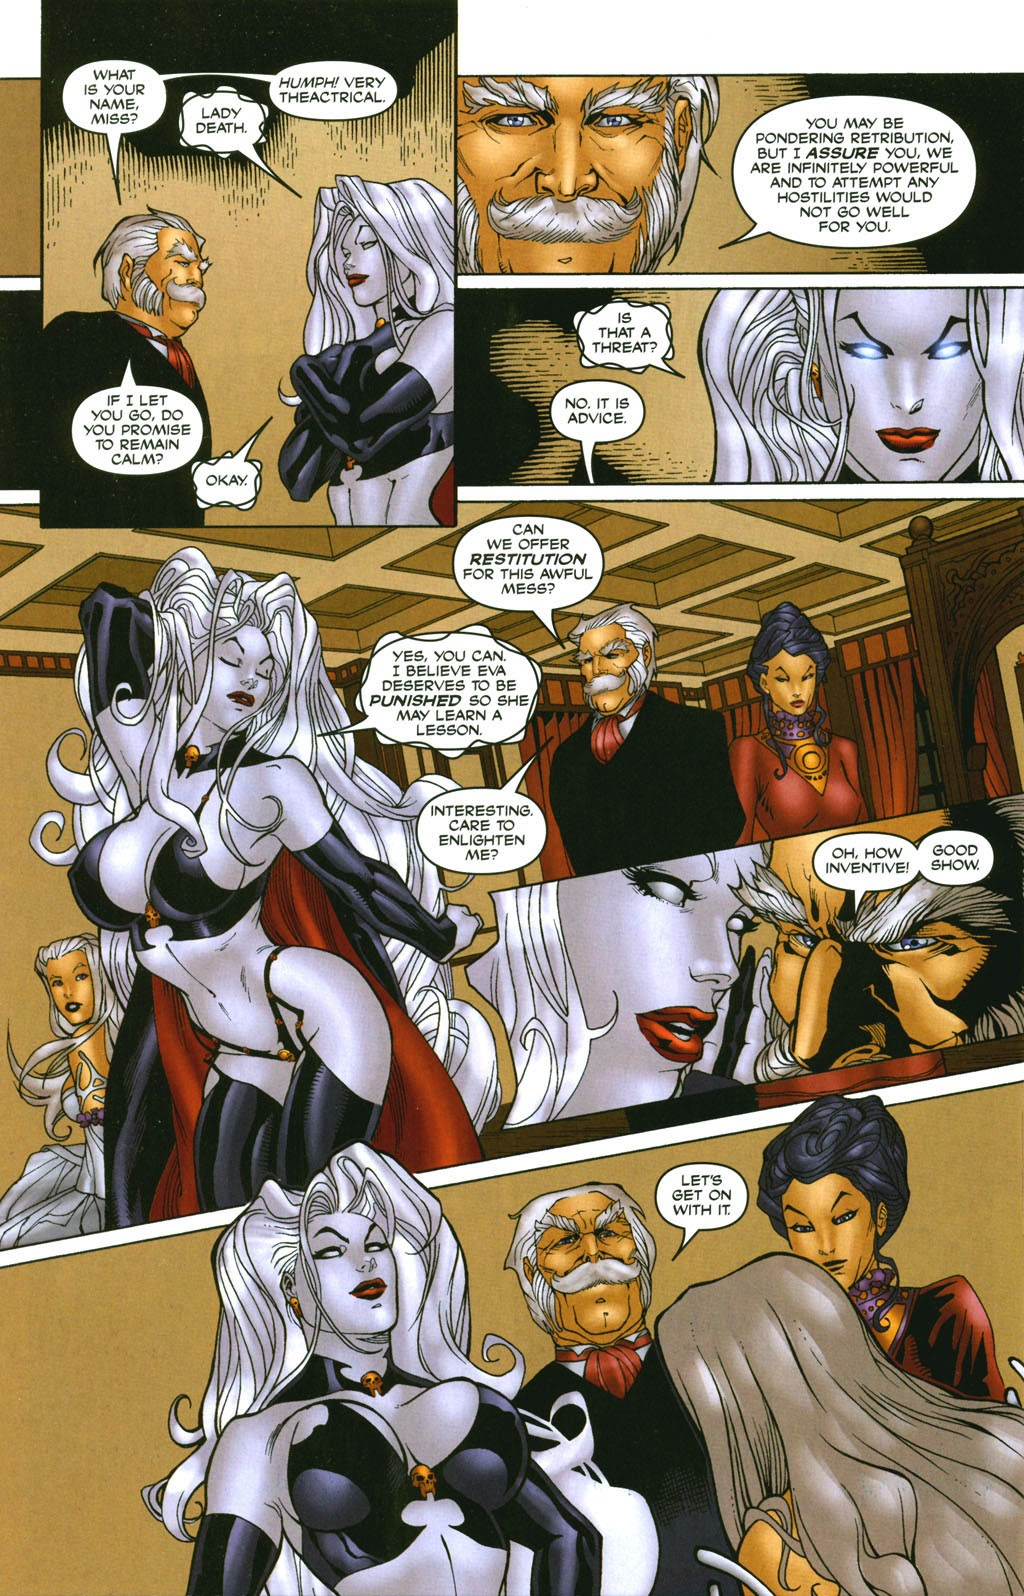 Read online Lady Death: The Wicked comic -  Issue #1 - 30